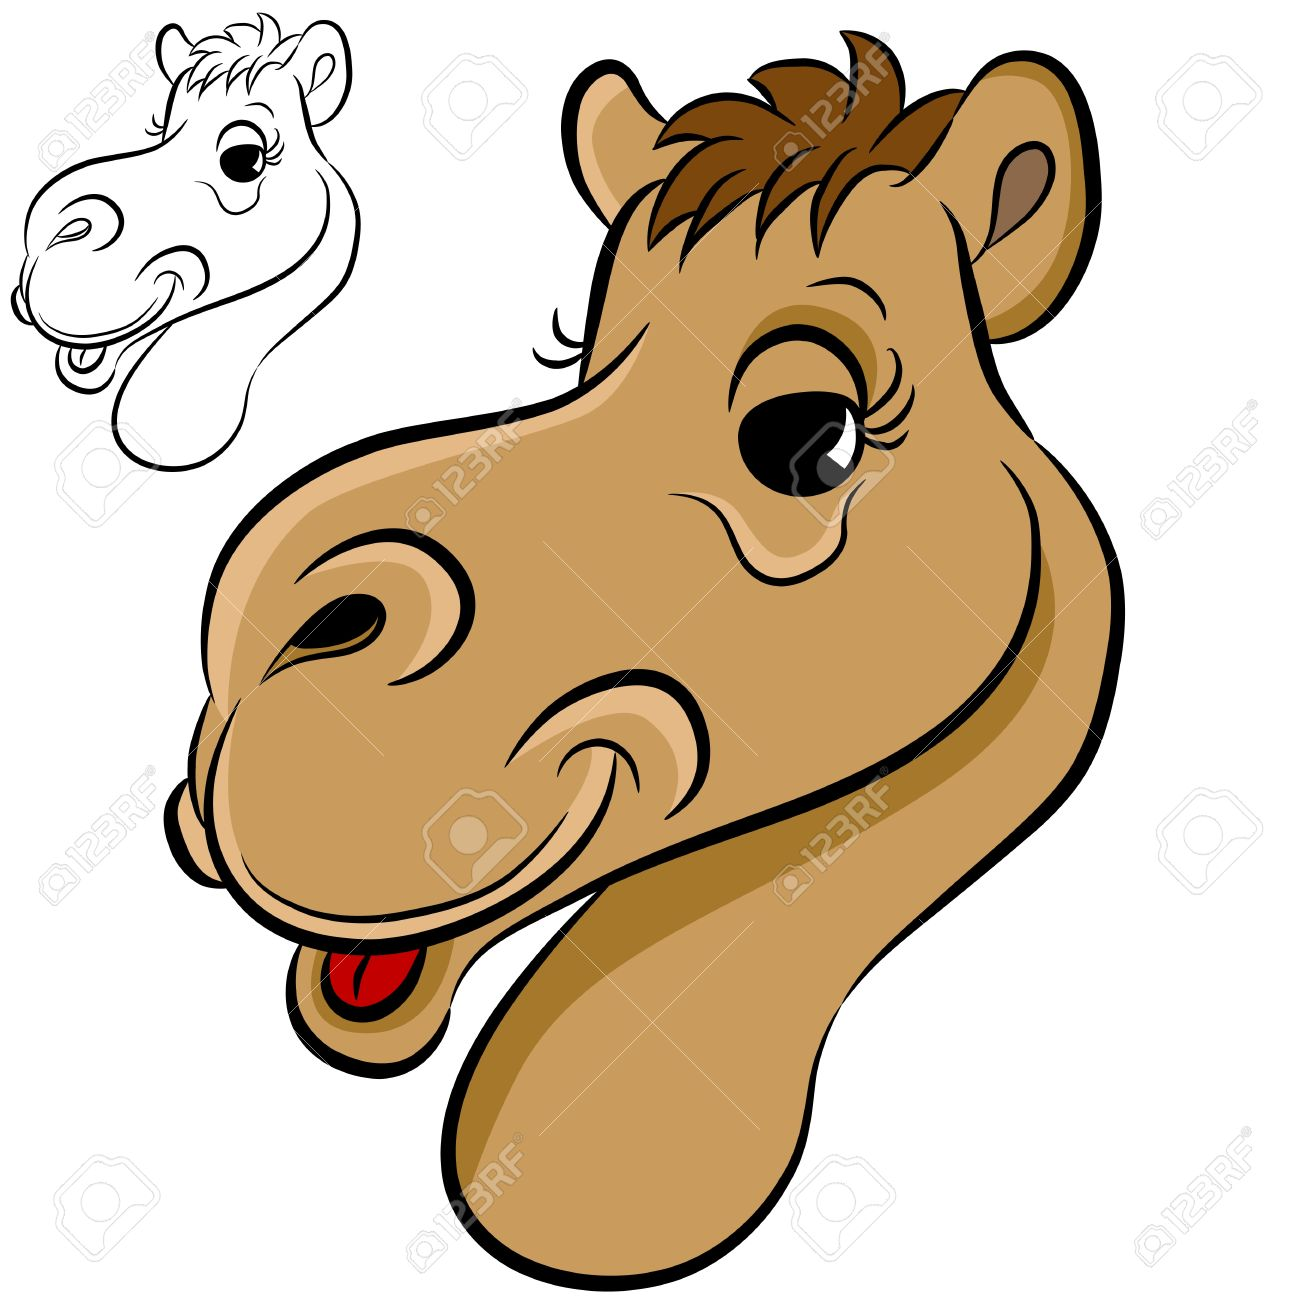 354 camel head stock vector illustration and royalty free camel